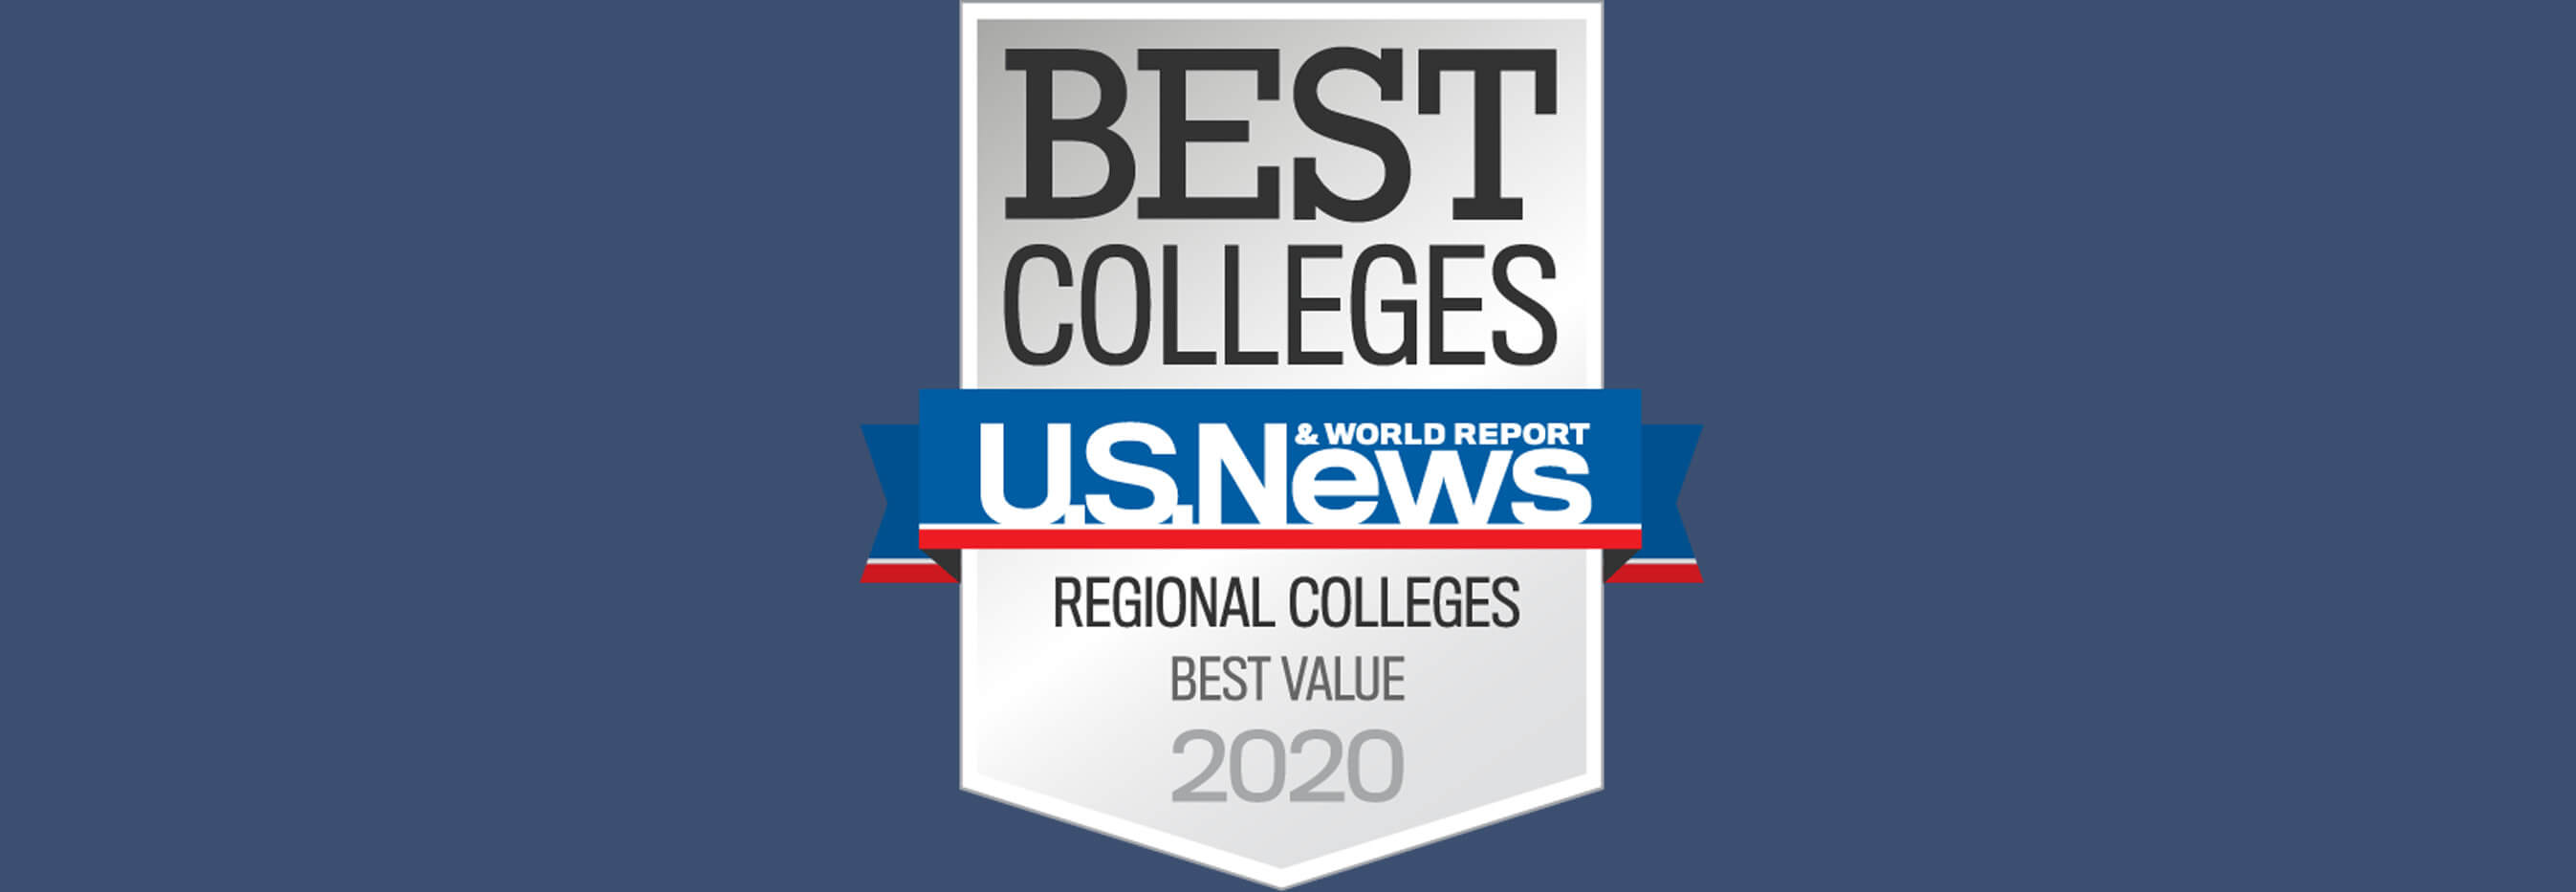 Usnews Best Colleges 2020.Us News World Report Newberry College One Of Best